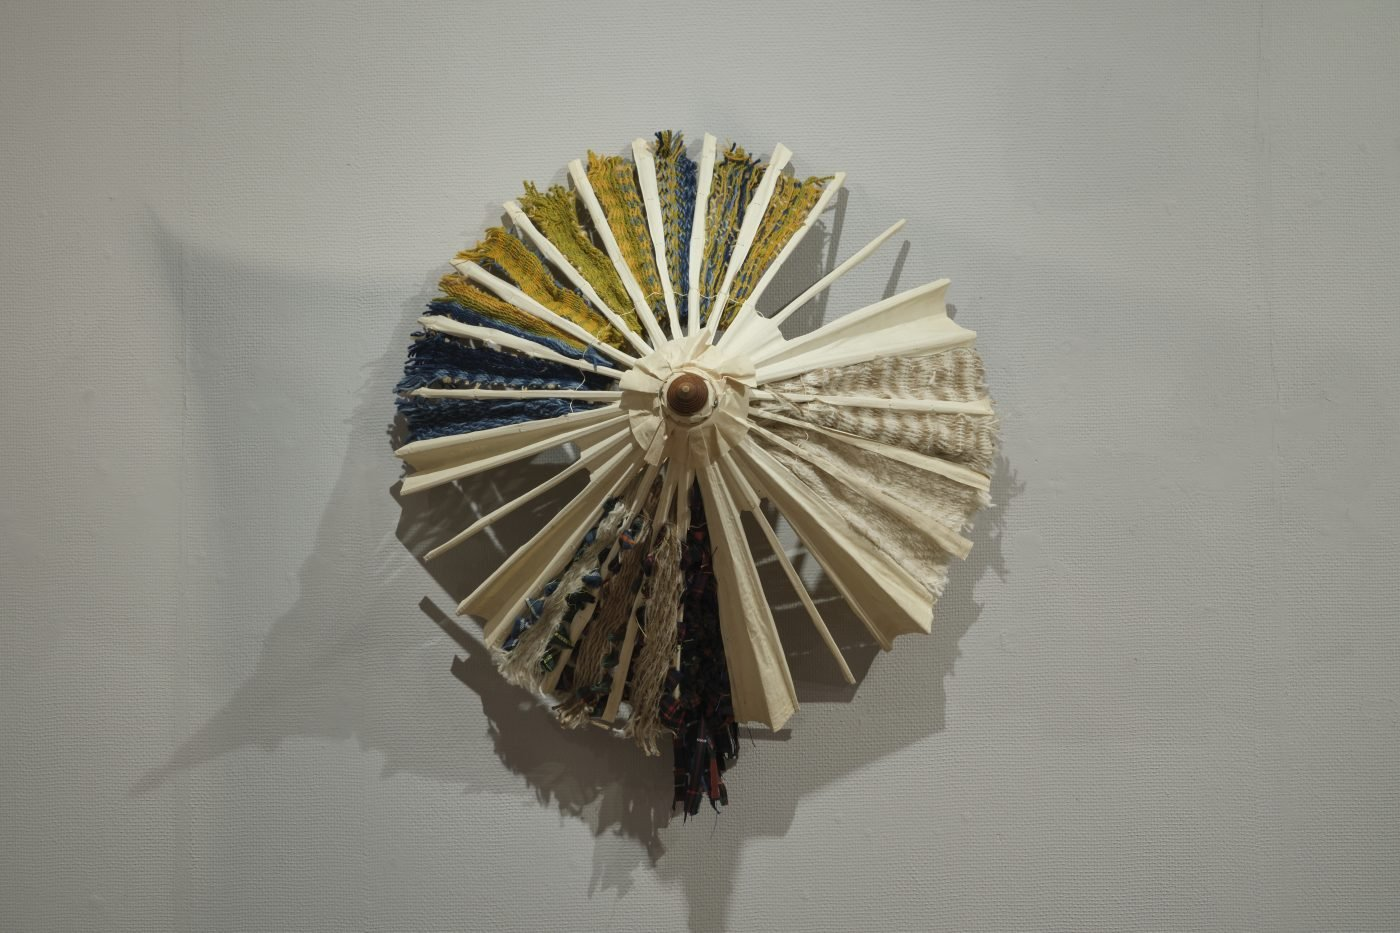 A wall-mounted open umbrella frame with handwoven yellow, neutral and blue fabrics between the sections